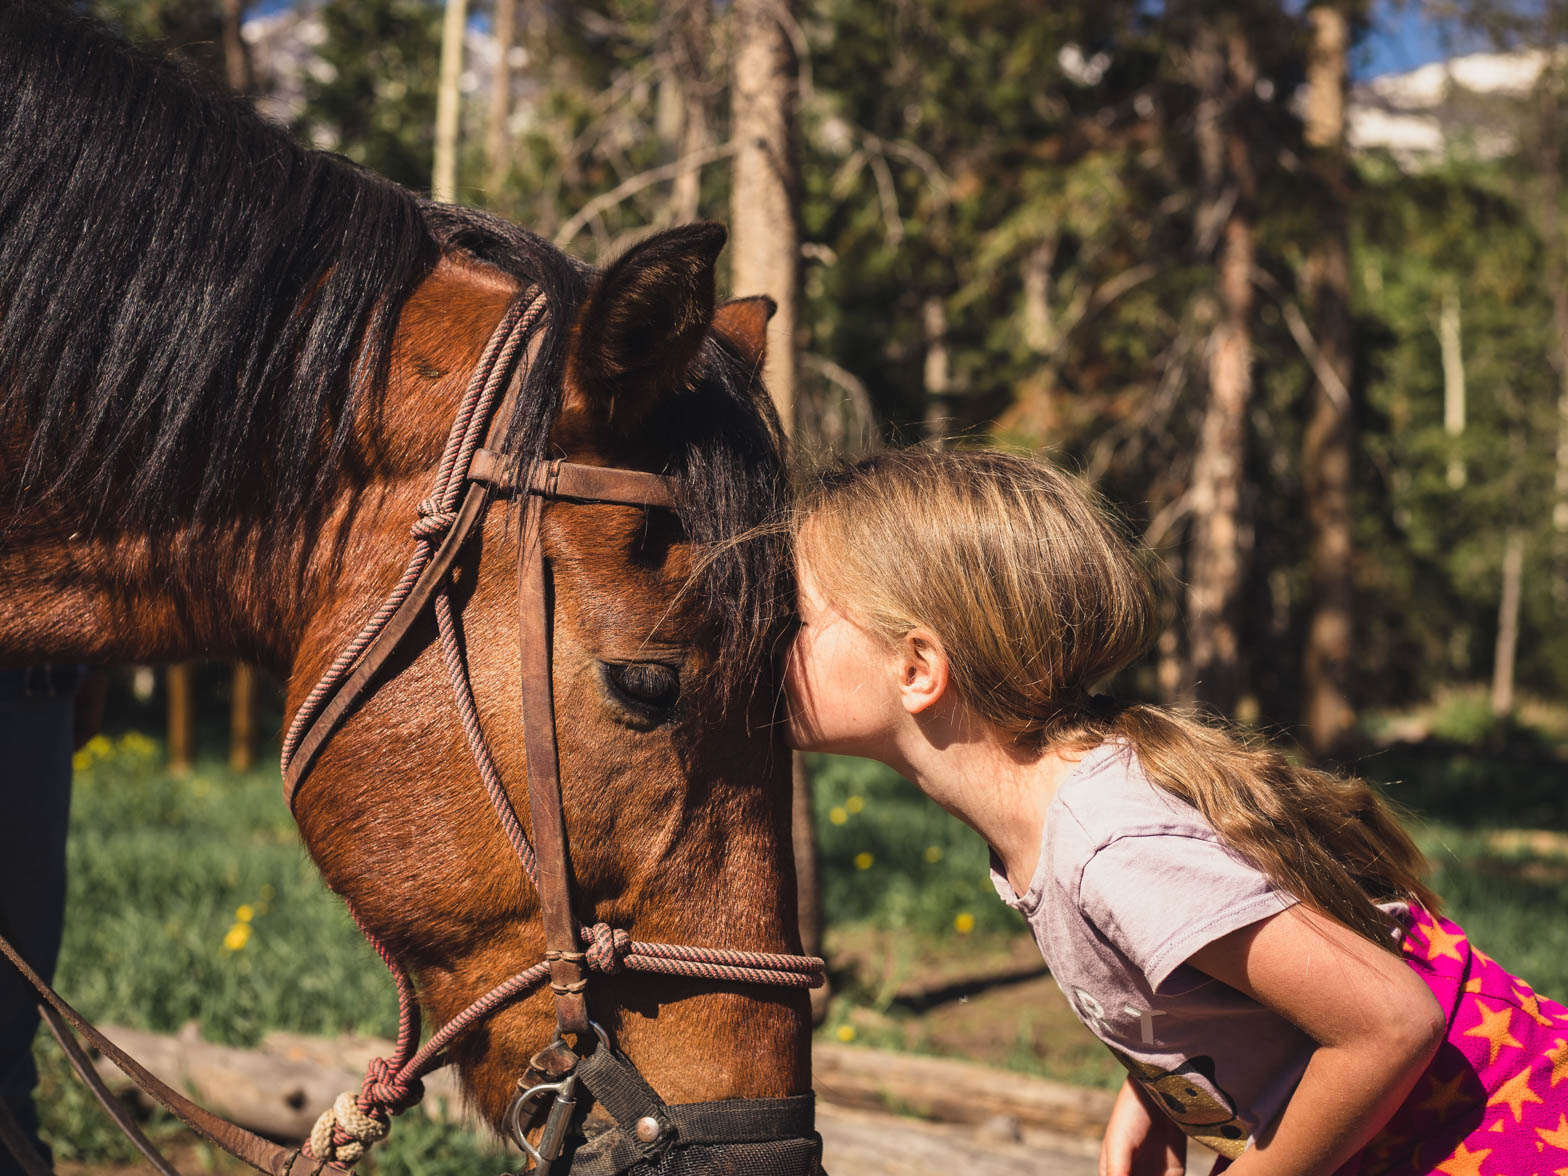 A little girl resting her head on a horse.